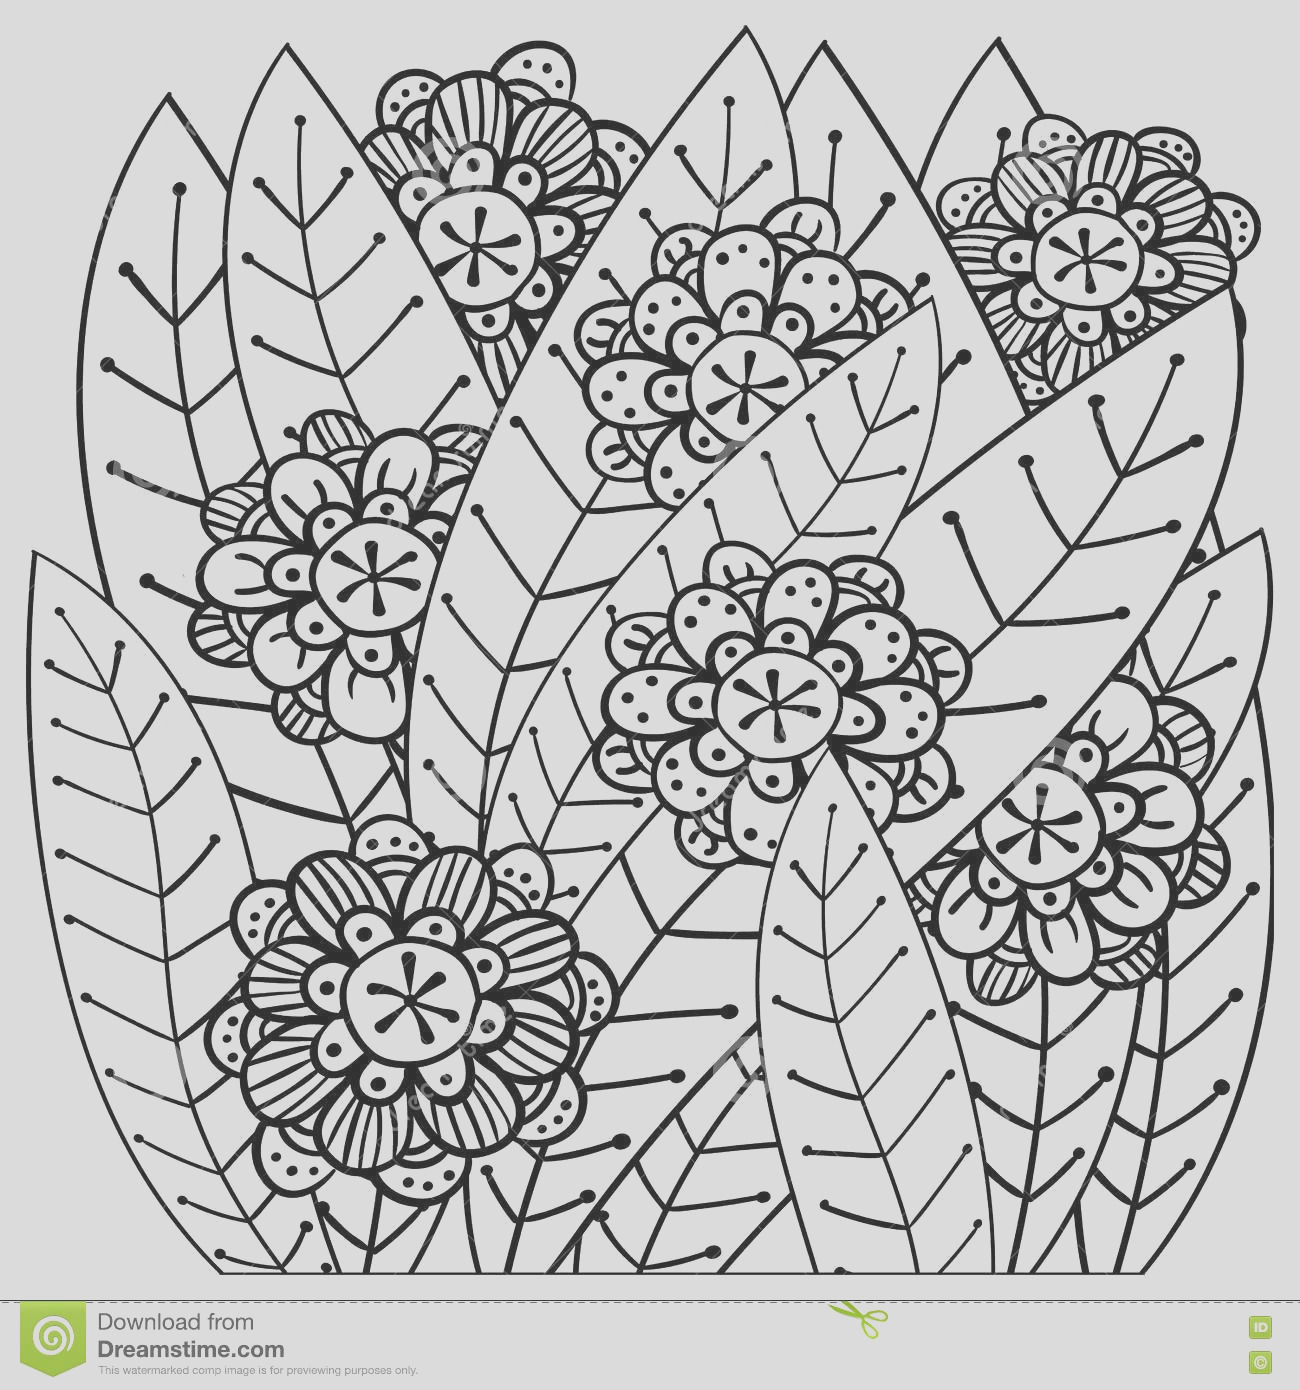 stock illustration whimsical garden adult coloring book page soft intricate pattern image